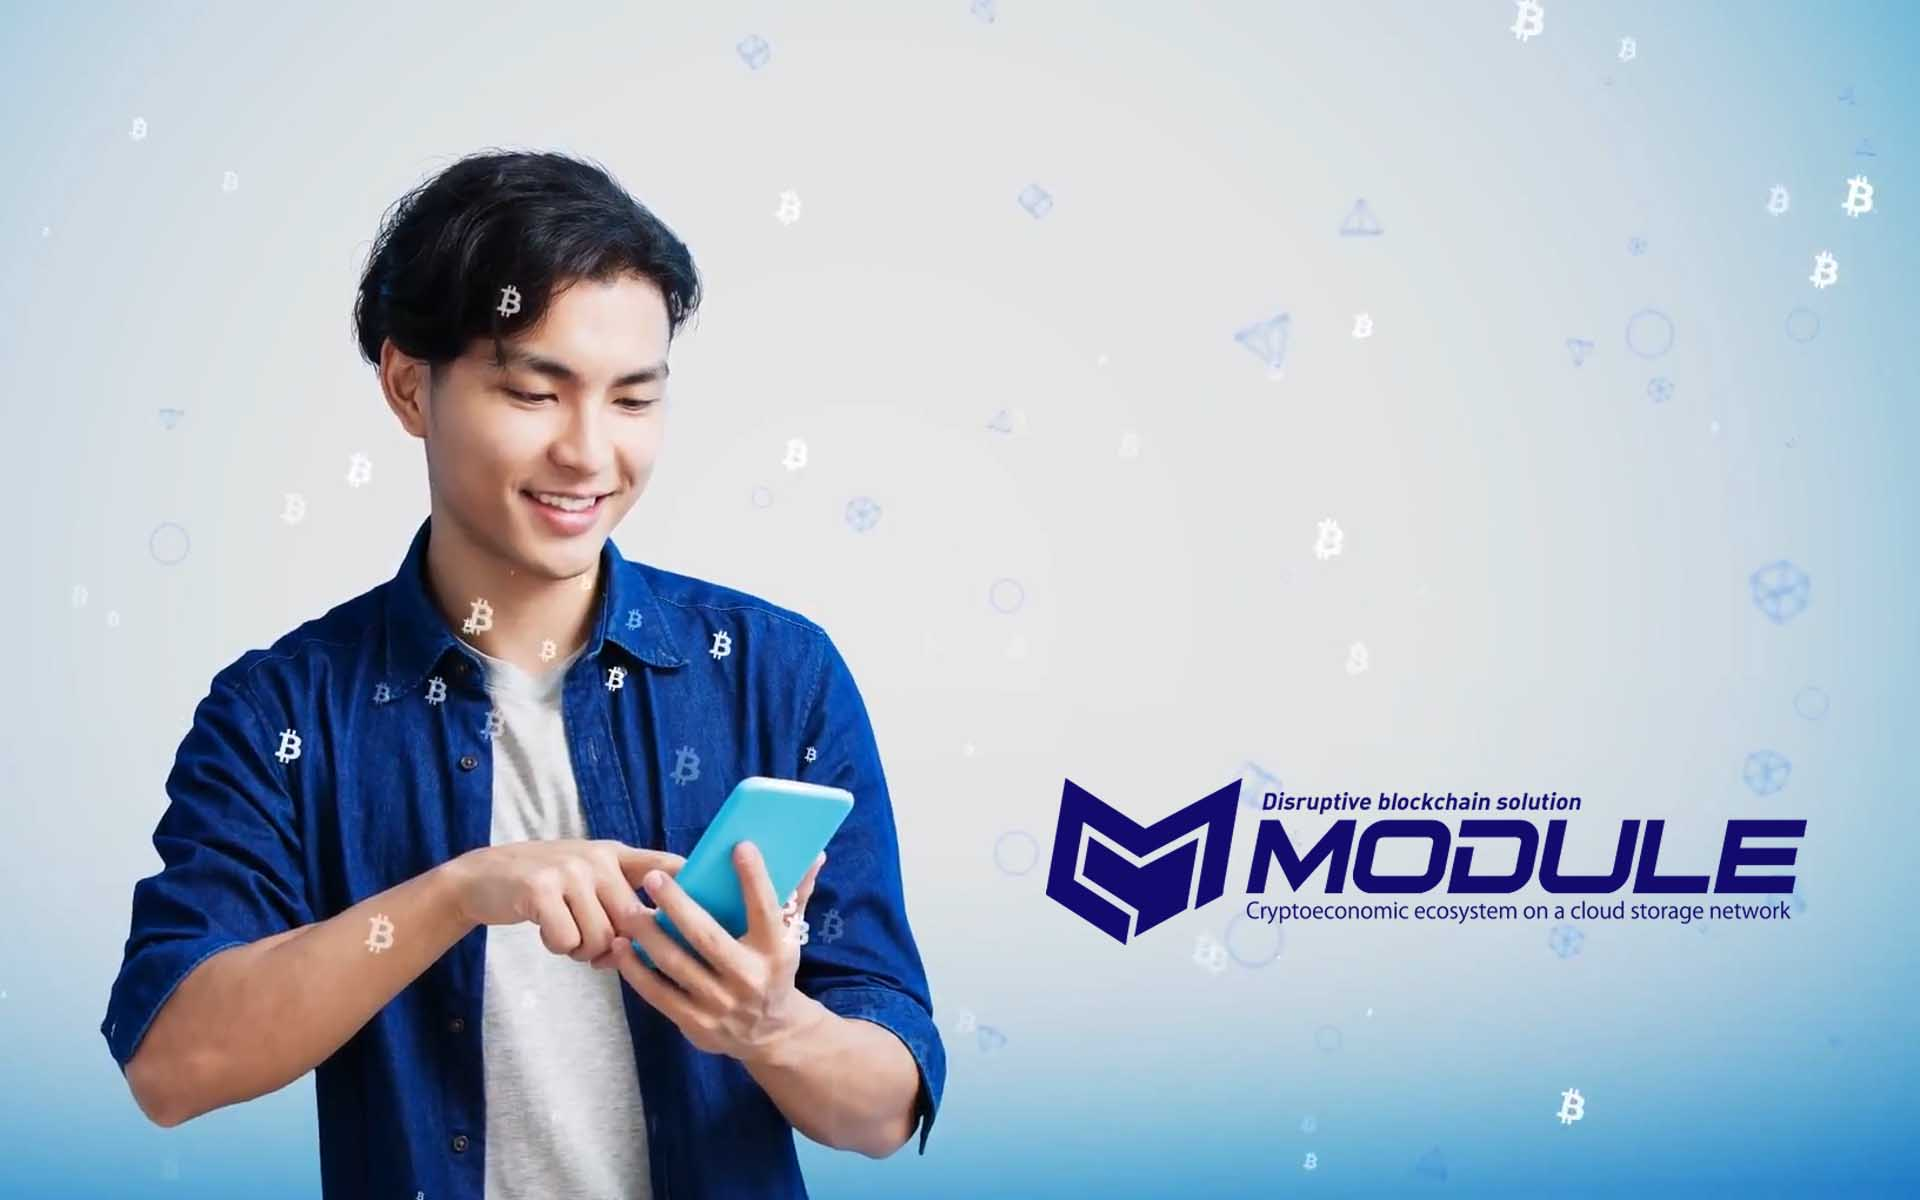 Module Sells $2 Million Worth of MODL Tokens During Their Private Presale